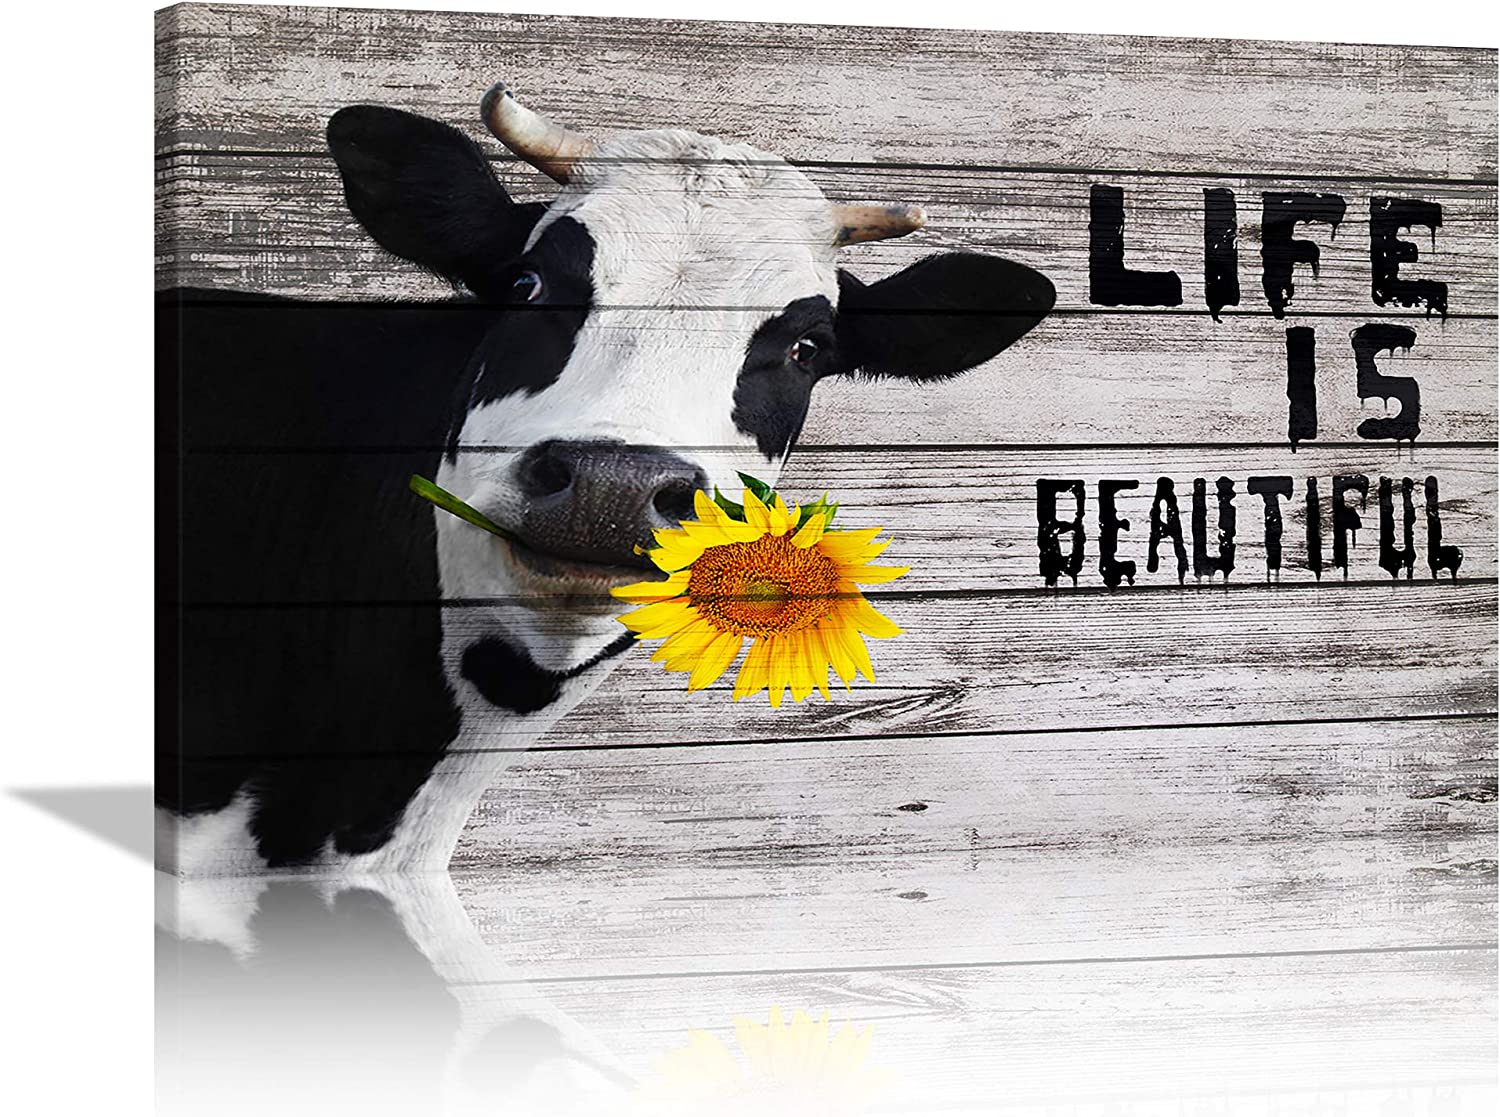 Farmhouse Animal Wall Art Canvas Sunflower Decoration for Kitchen Bathroom Cow Wall Art Decor for Home Cow Picture Painting Inspirational Poster Print Rustic Wall Home Decor Framed Ready to Hang